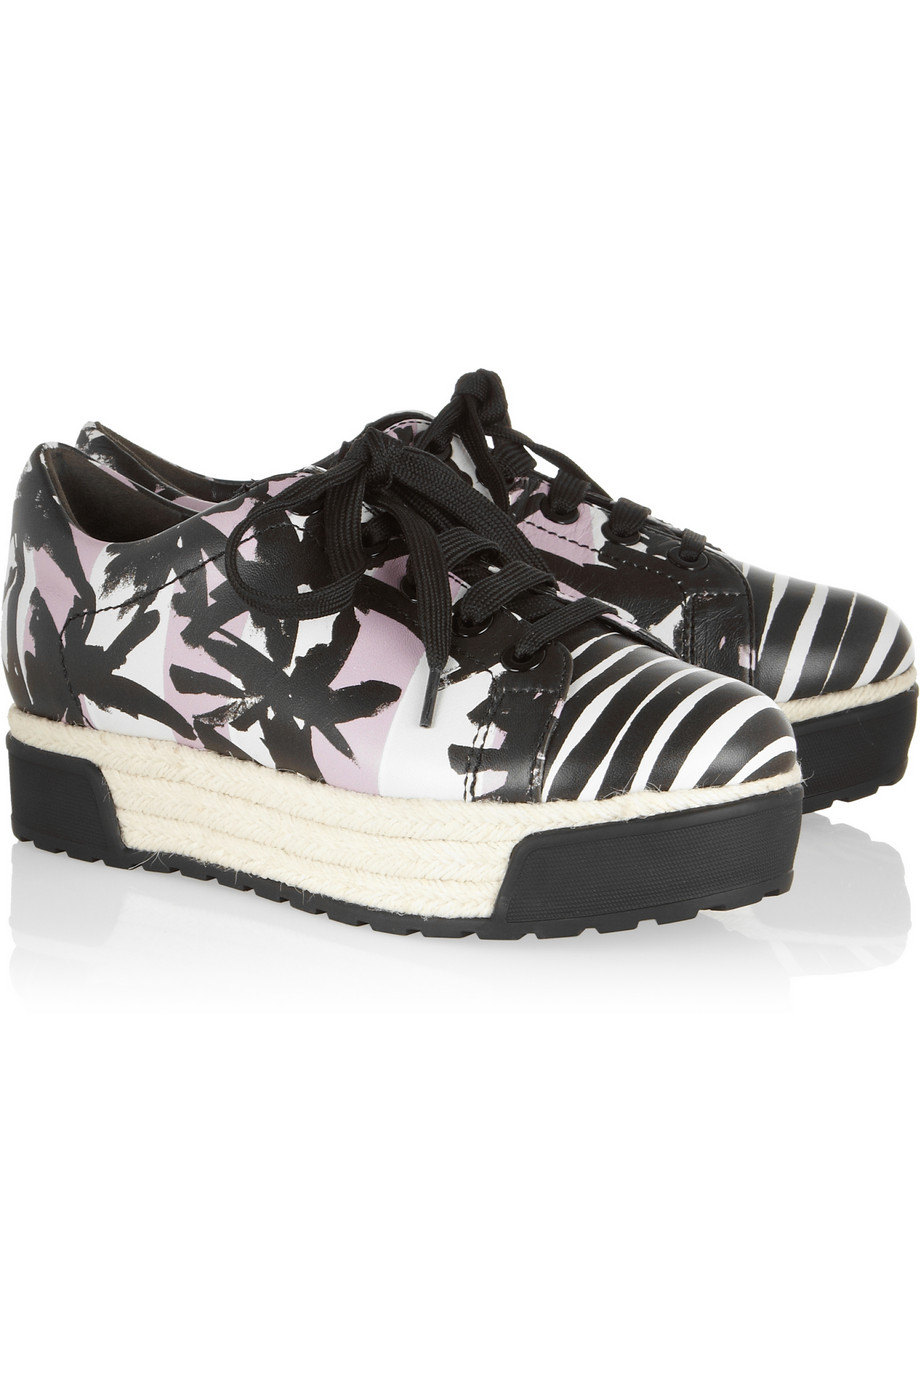 KENZO Palm Tree Print Leather and Raffia Sneakers in Black